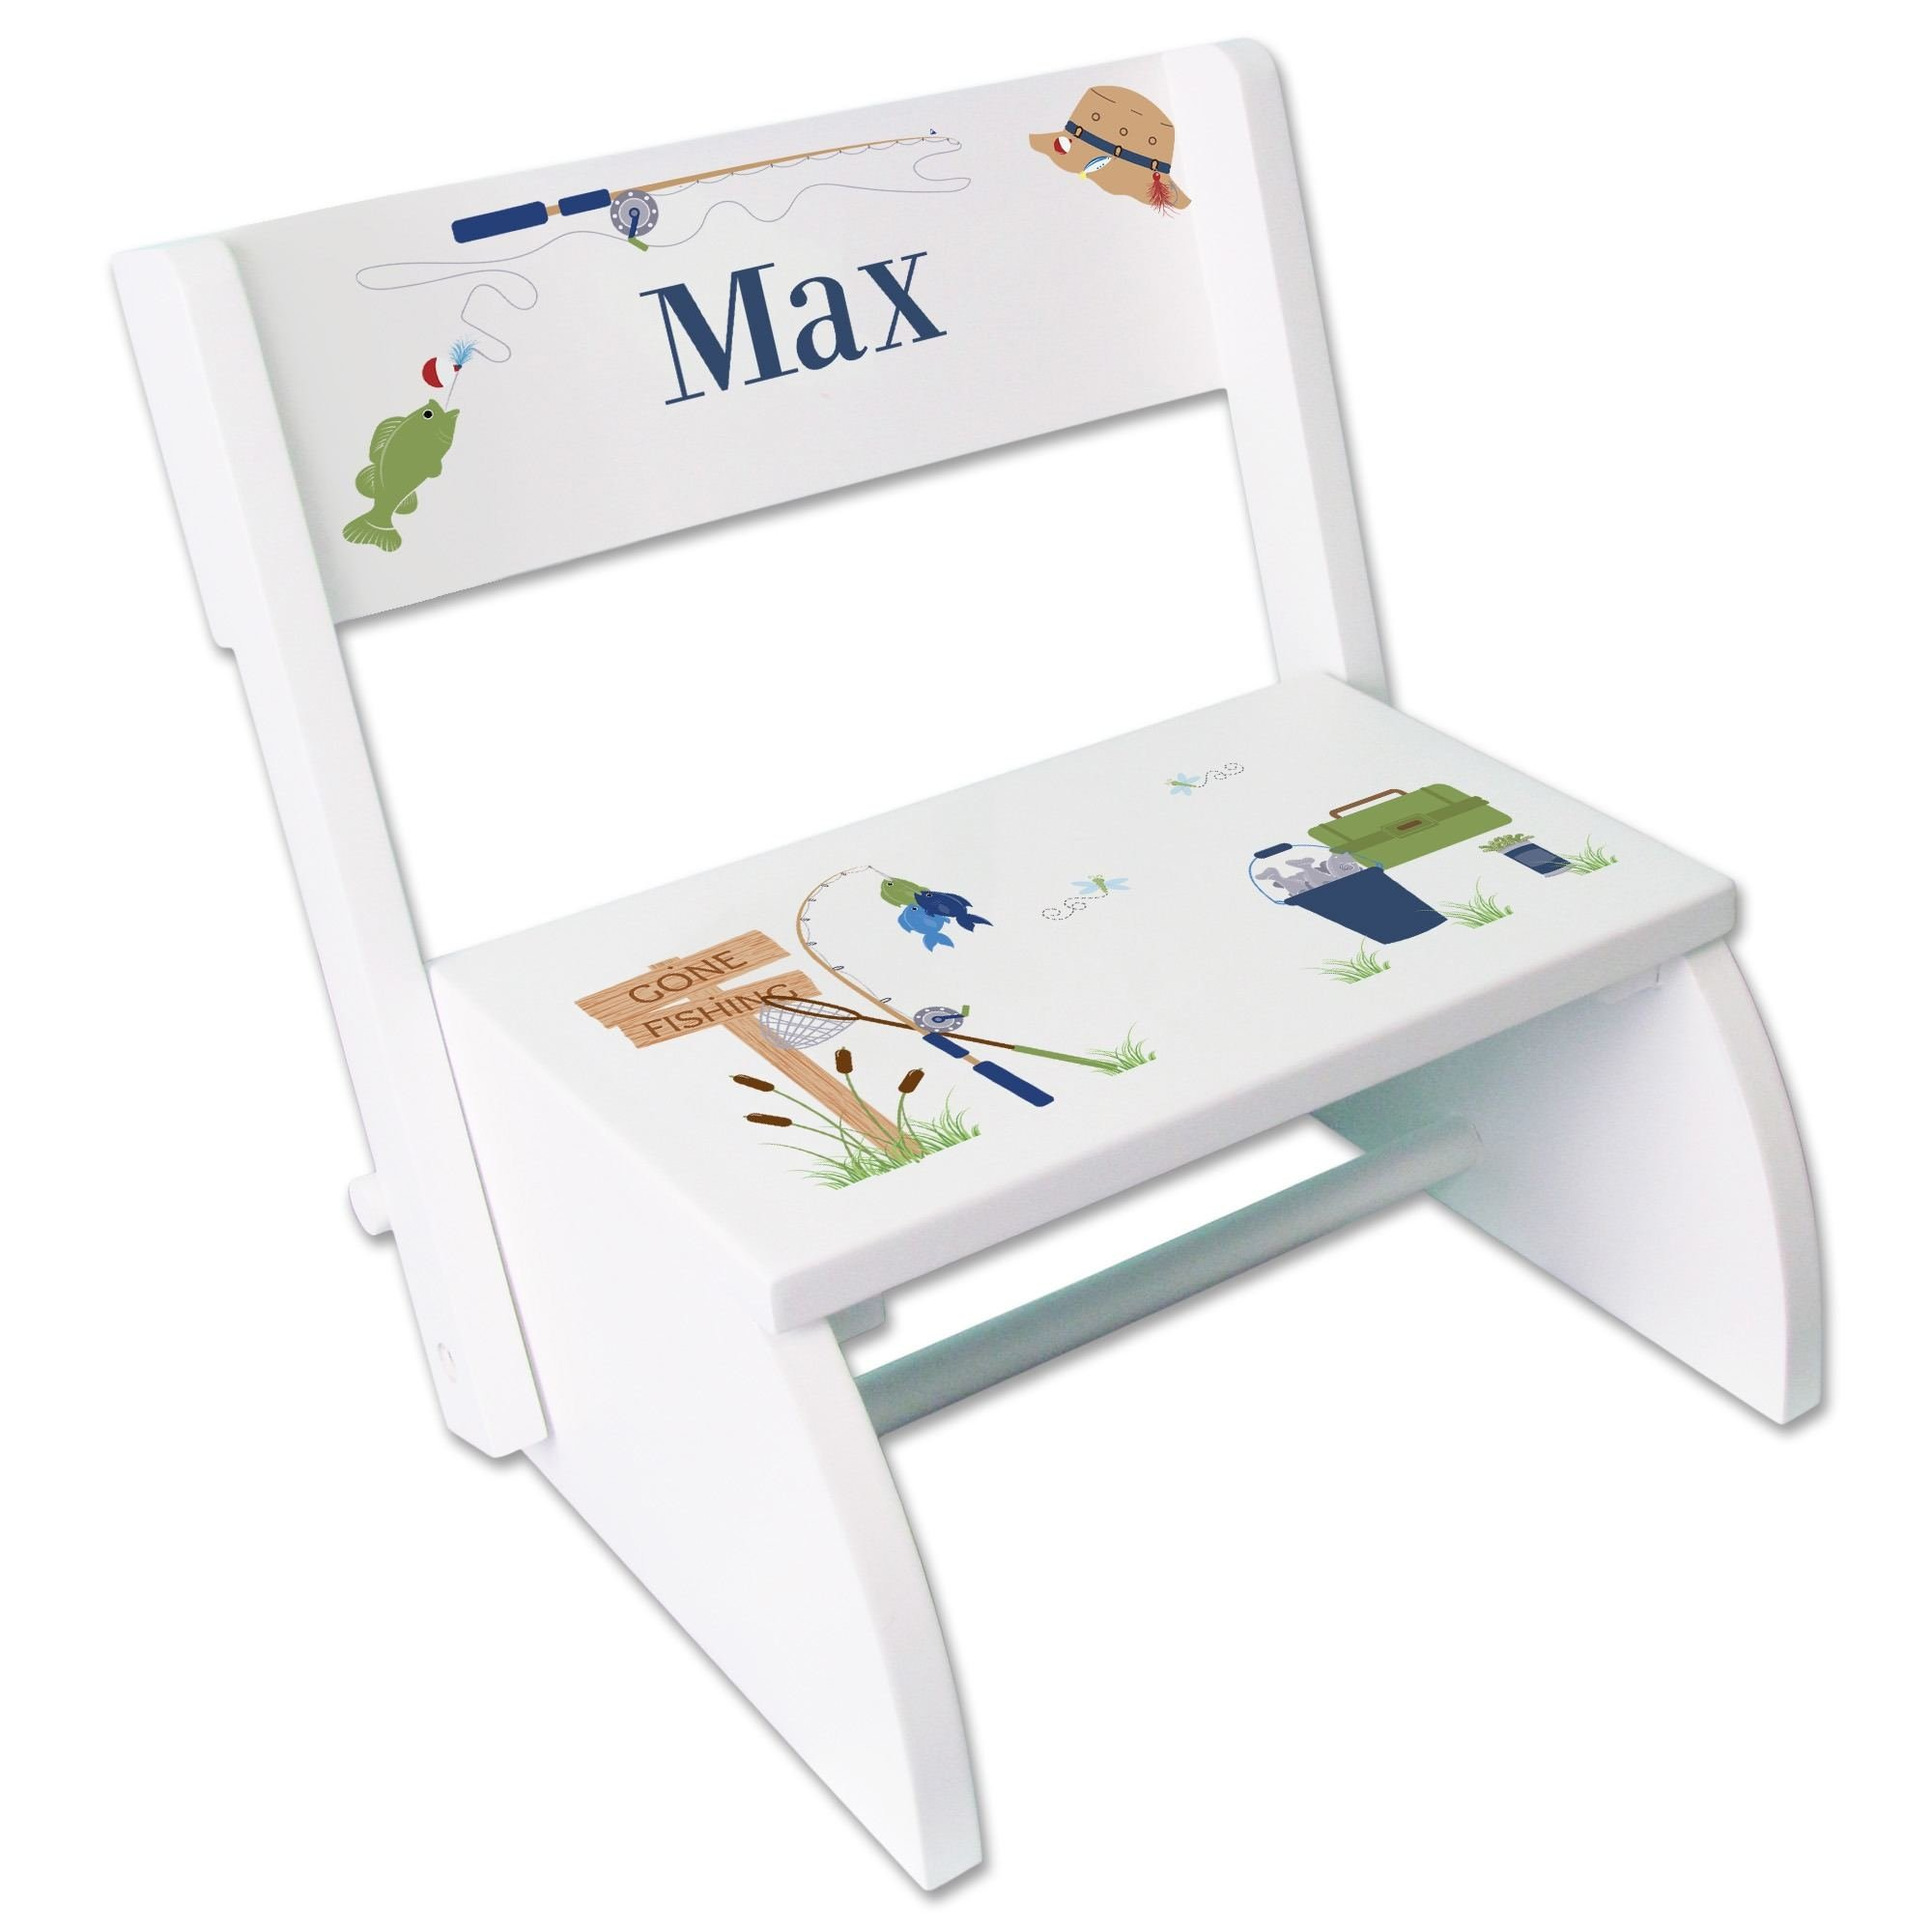 Personalized Gone Fishing White Wooden Folding Stool and Seat